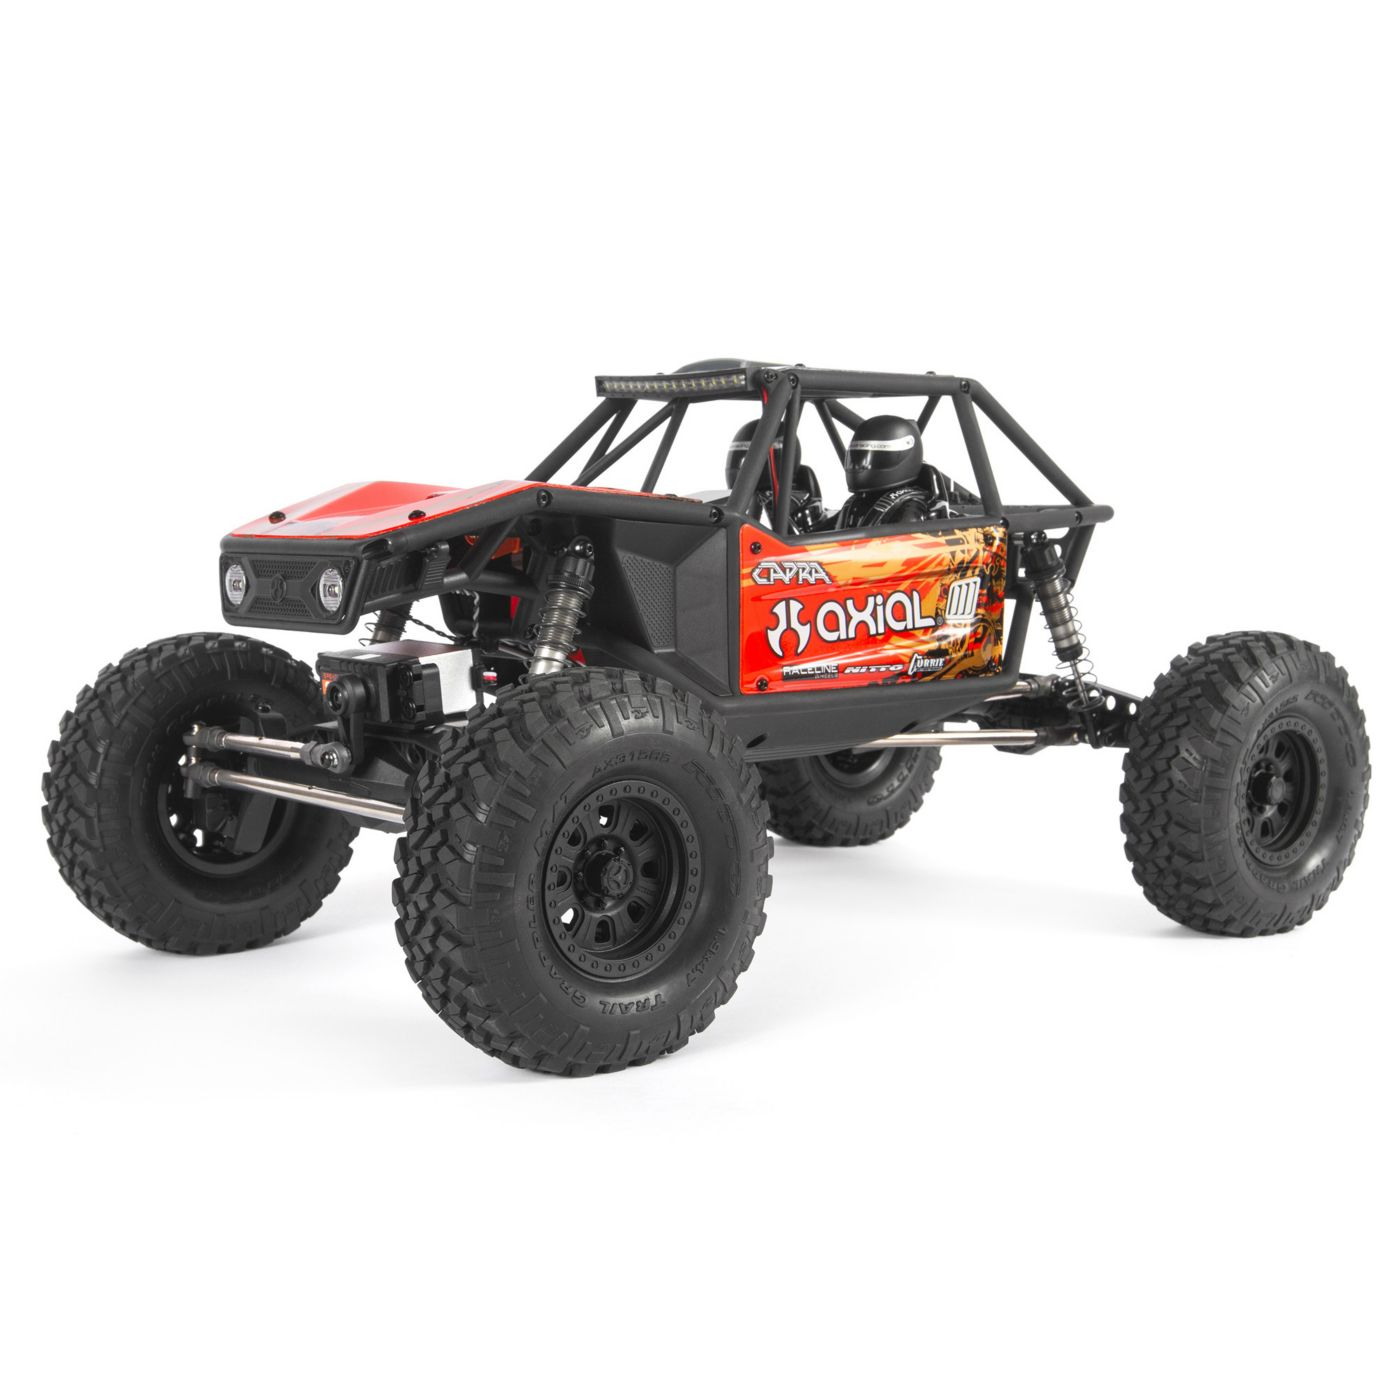 "Axial Racing 1/10 Capra 1.9 Unlimited 4WD RTR Trail Buggy, Red - <font color=""red""><b>FREE BATTERY PROMO</b></font>"